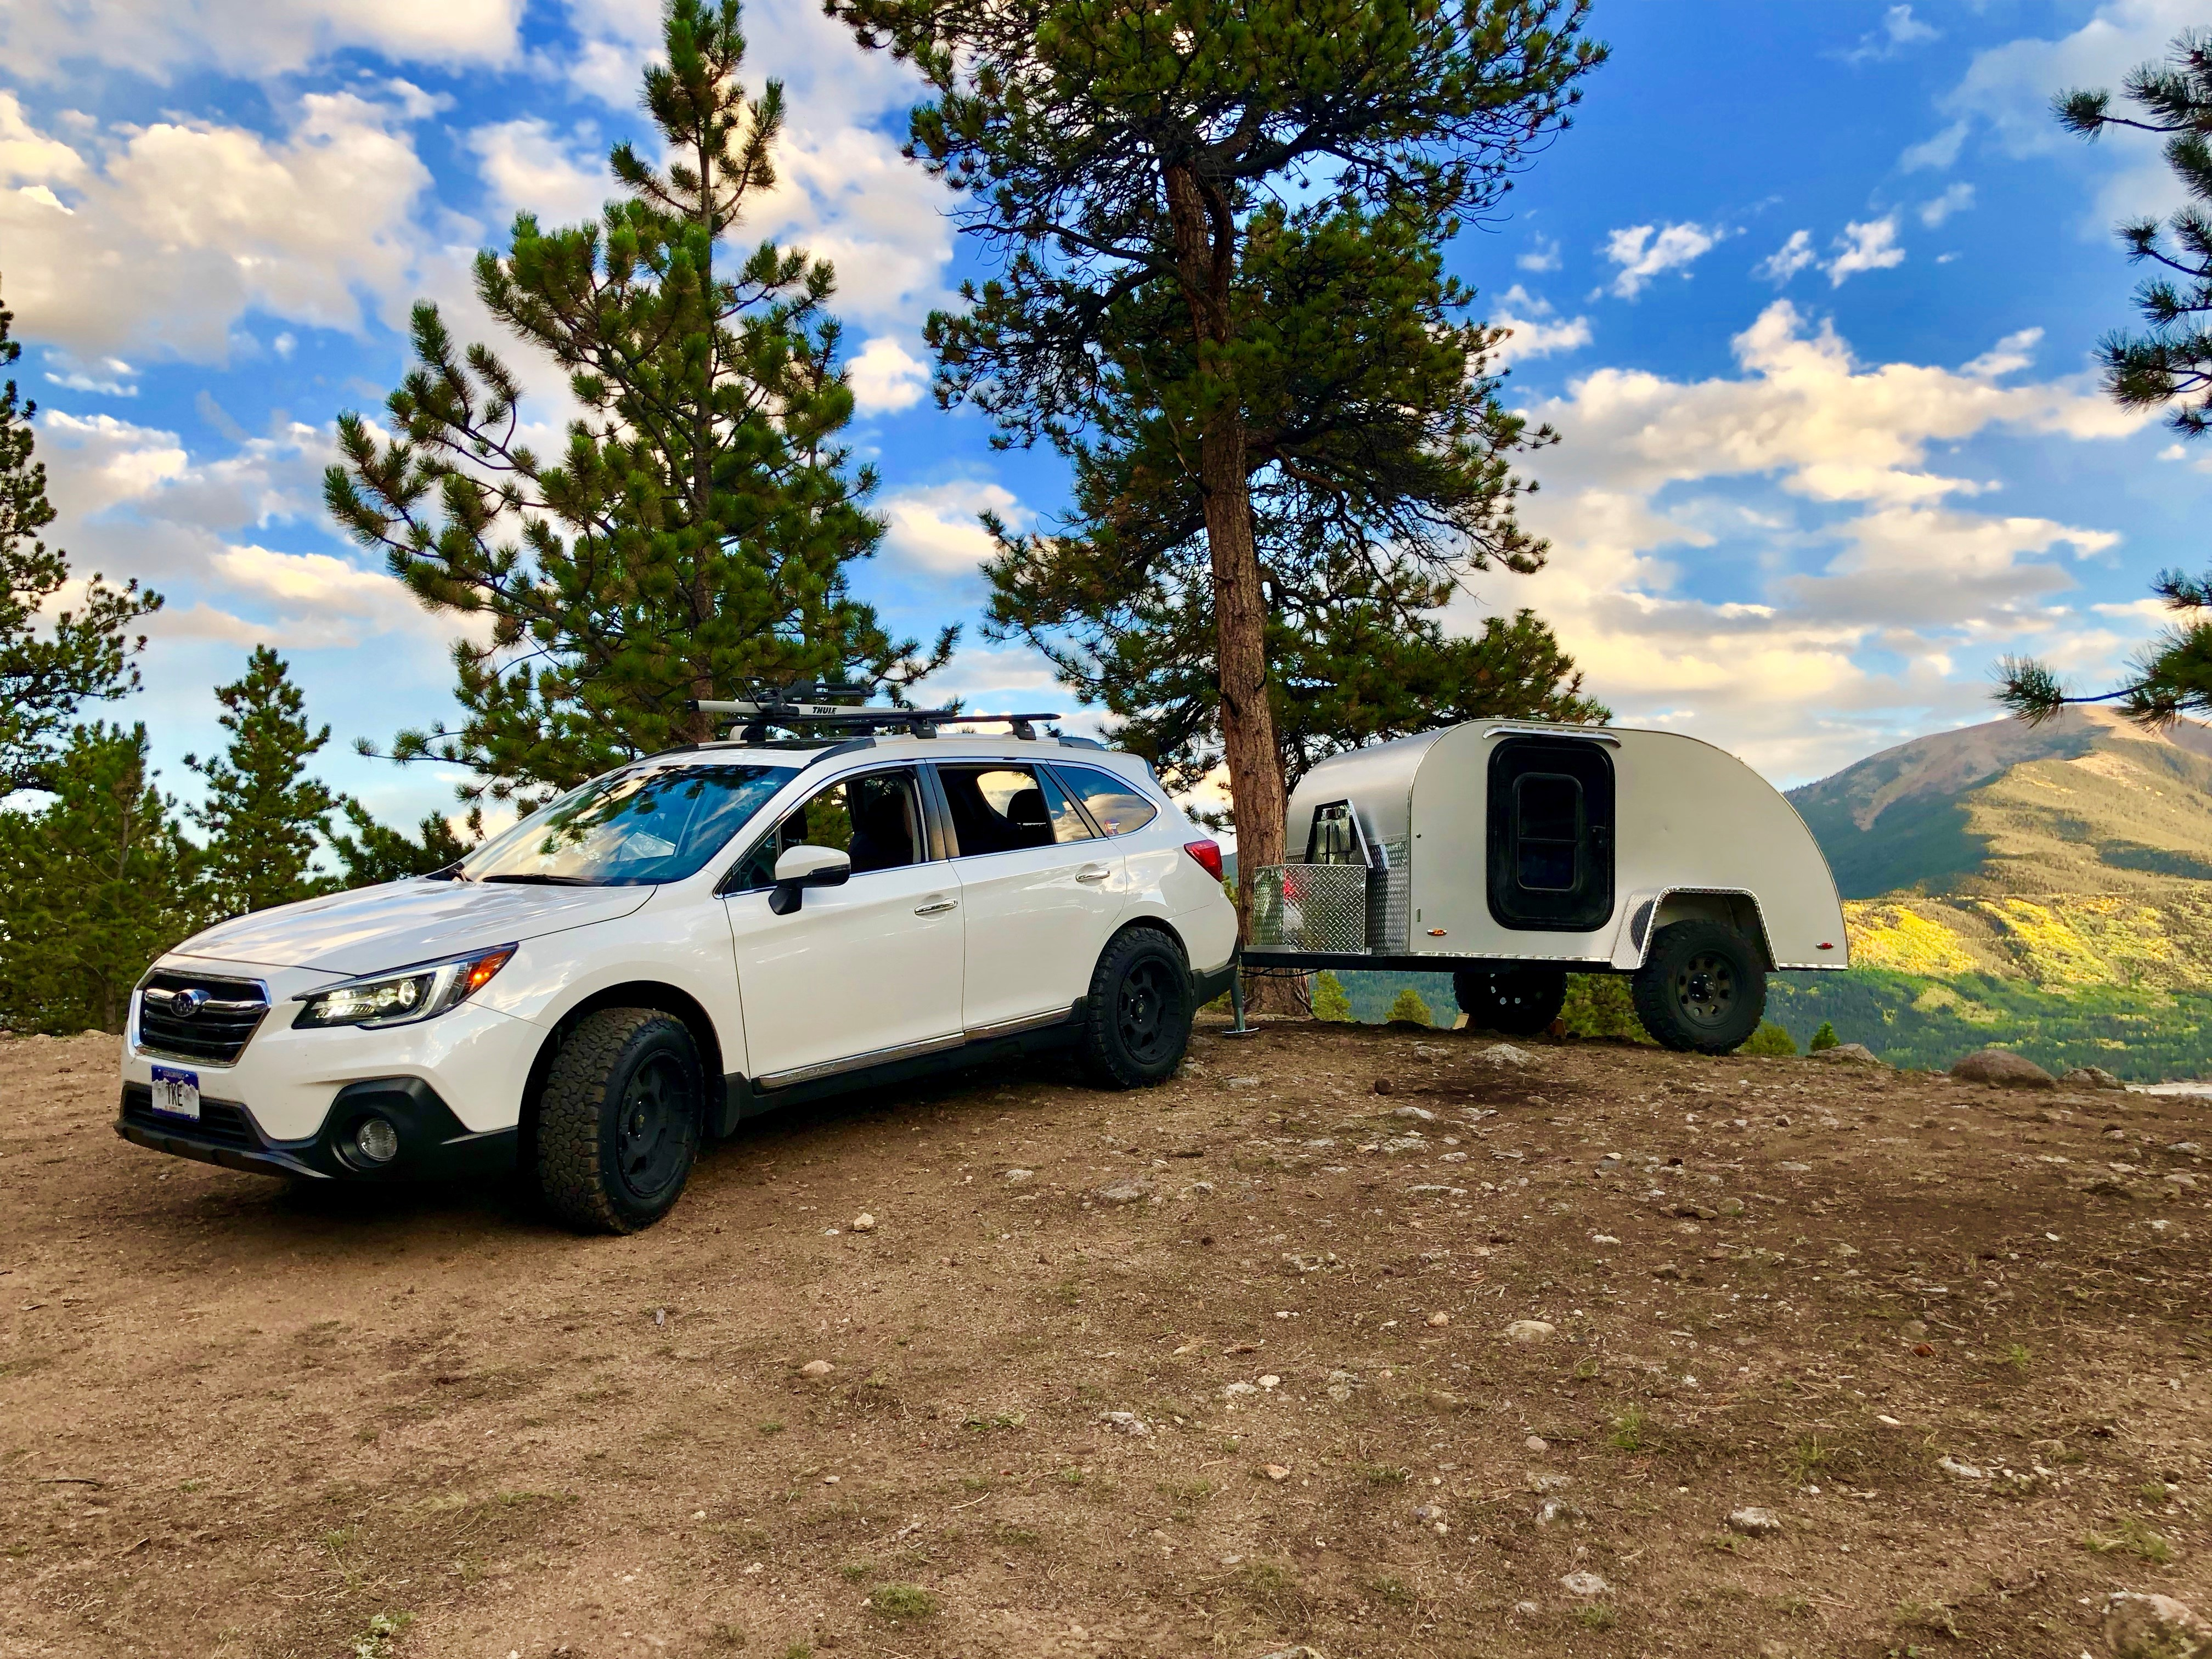 The Canyonland Teardrop is capable of going off-road and off-grid, taking you on new adventures in Colorado's Rocky Mountains! . Colorado Teardrops Canyonland 2018